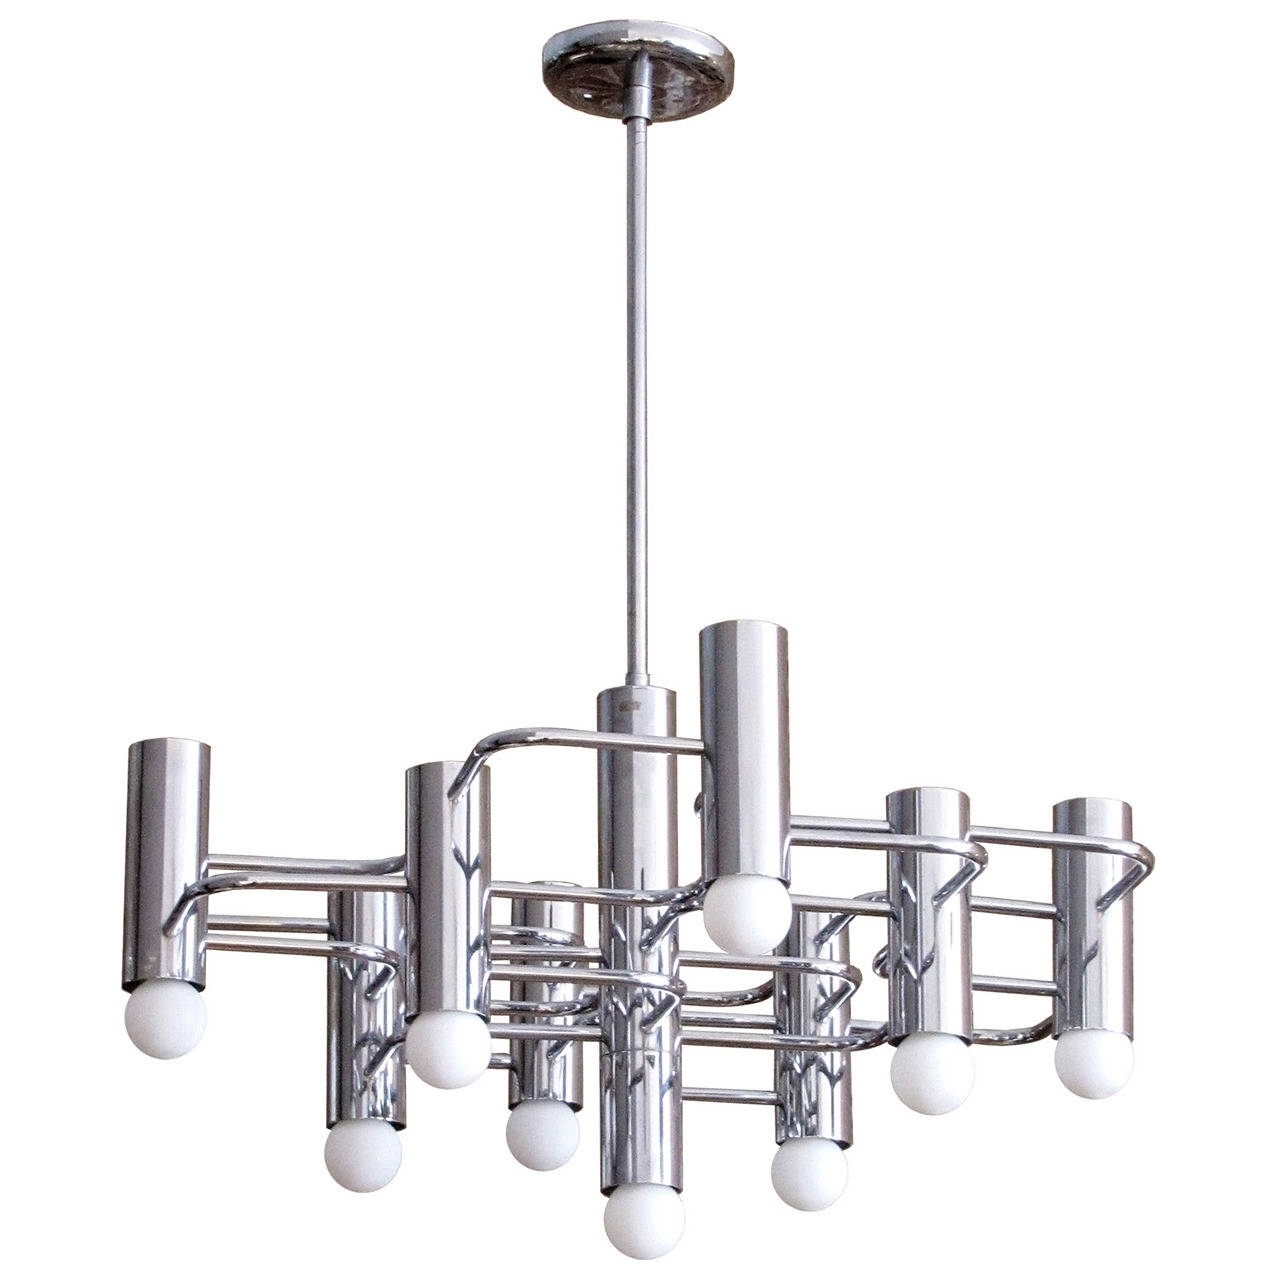 Chrome Chandeliers Pertaining To Newest Boulanger Chrome Chandelier, 1960 For Sale At 1Stdibs (View 6 of 15)